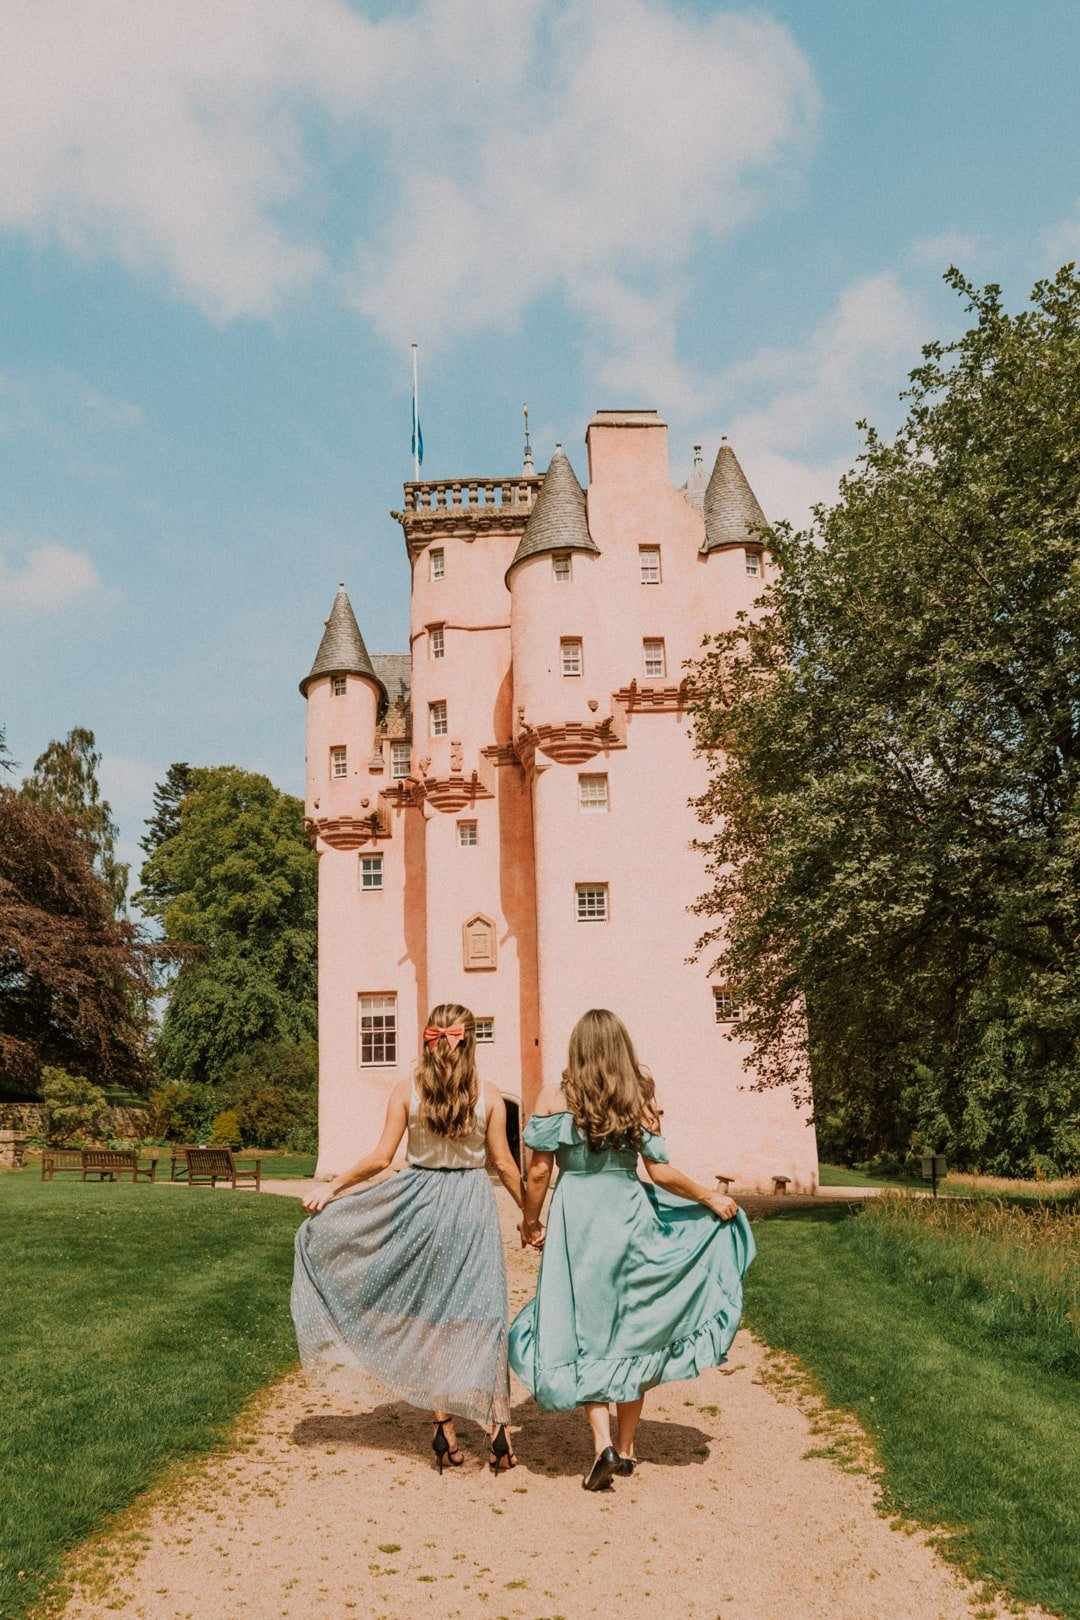 Scotland is one of the best Instagrammable places in the world.